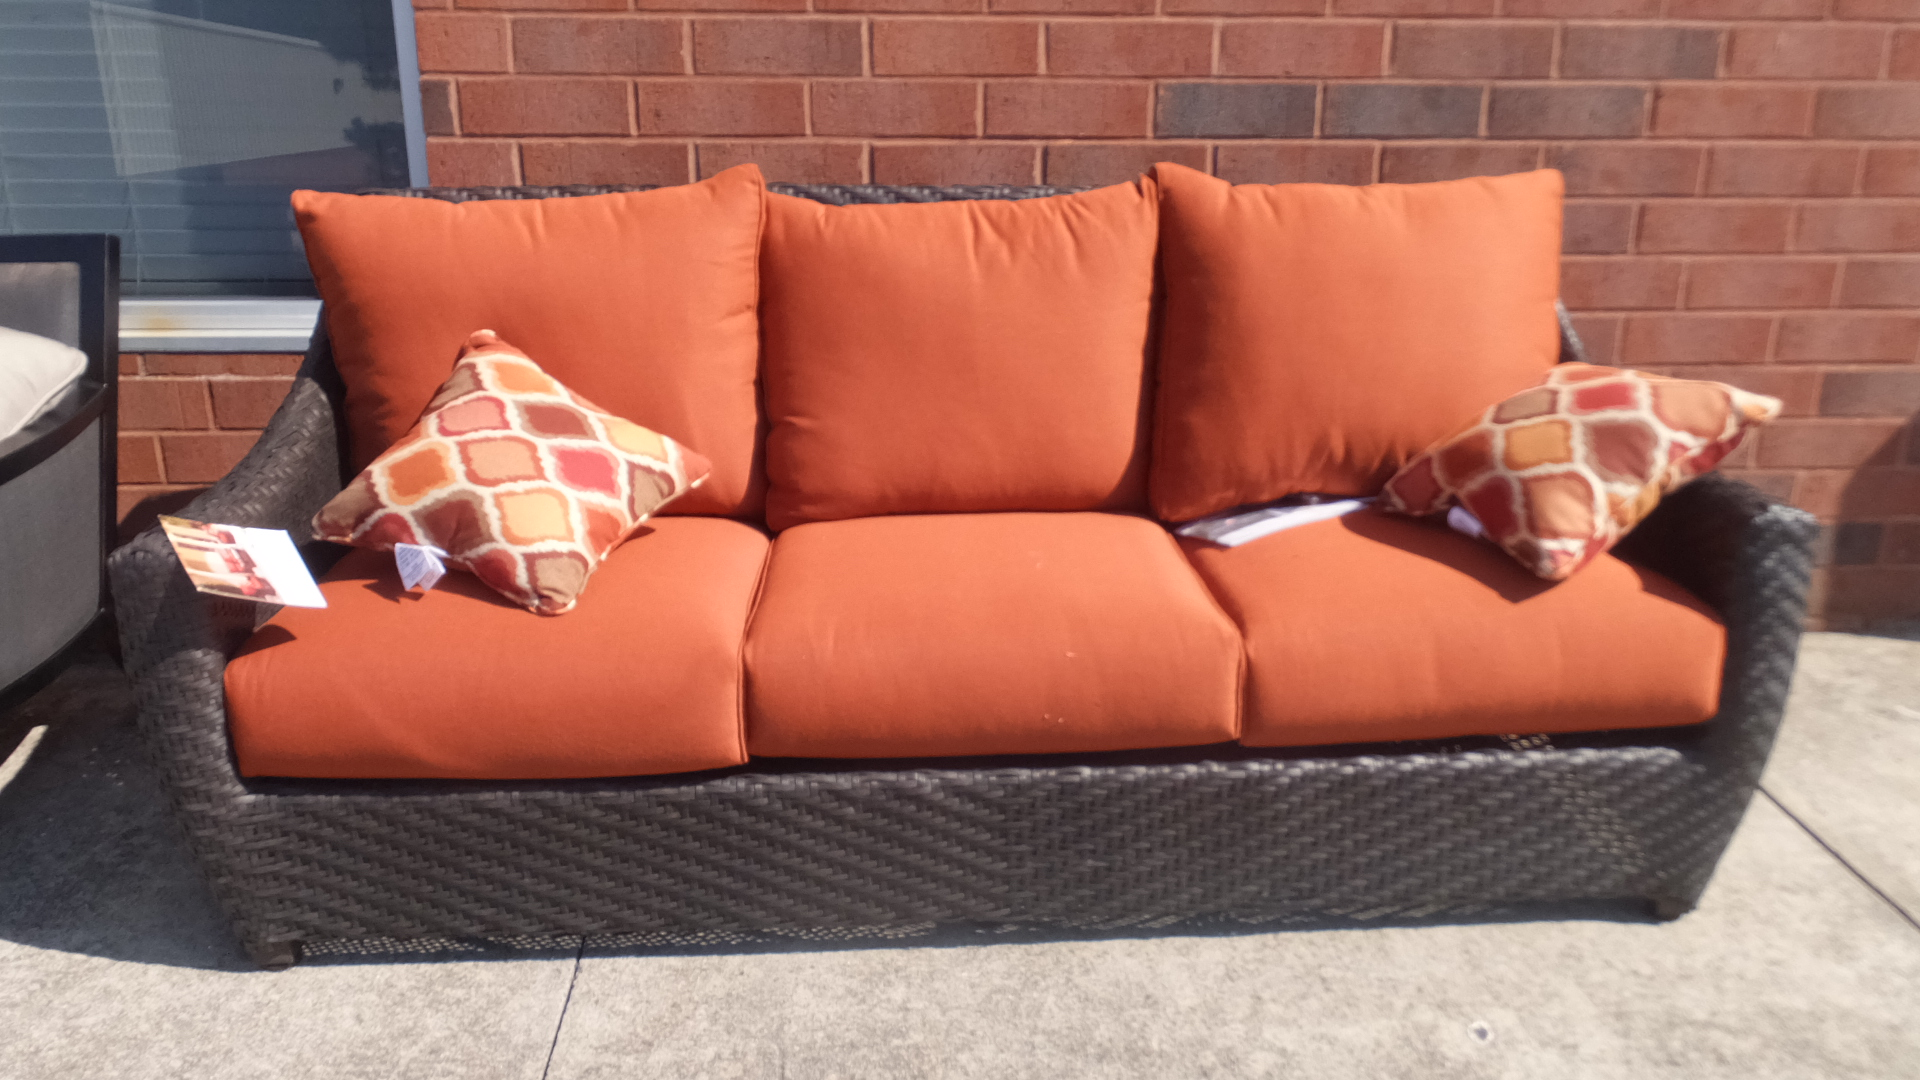 Outdoor patio furniture sale 50 off retail many pieces for Furniture 50 off